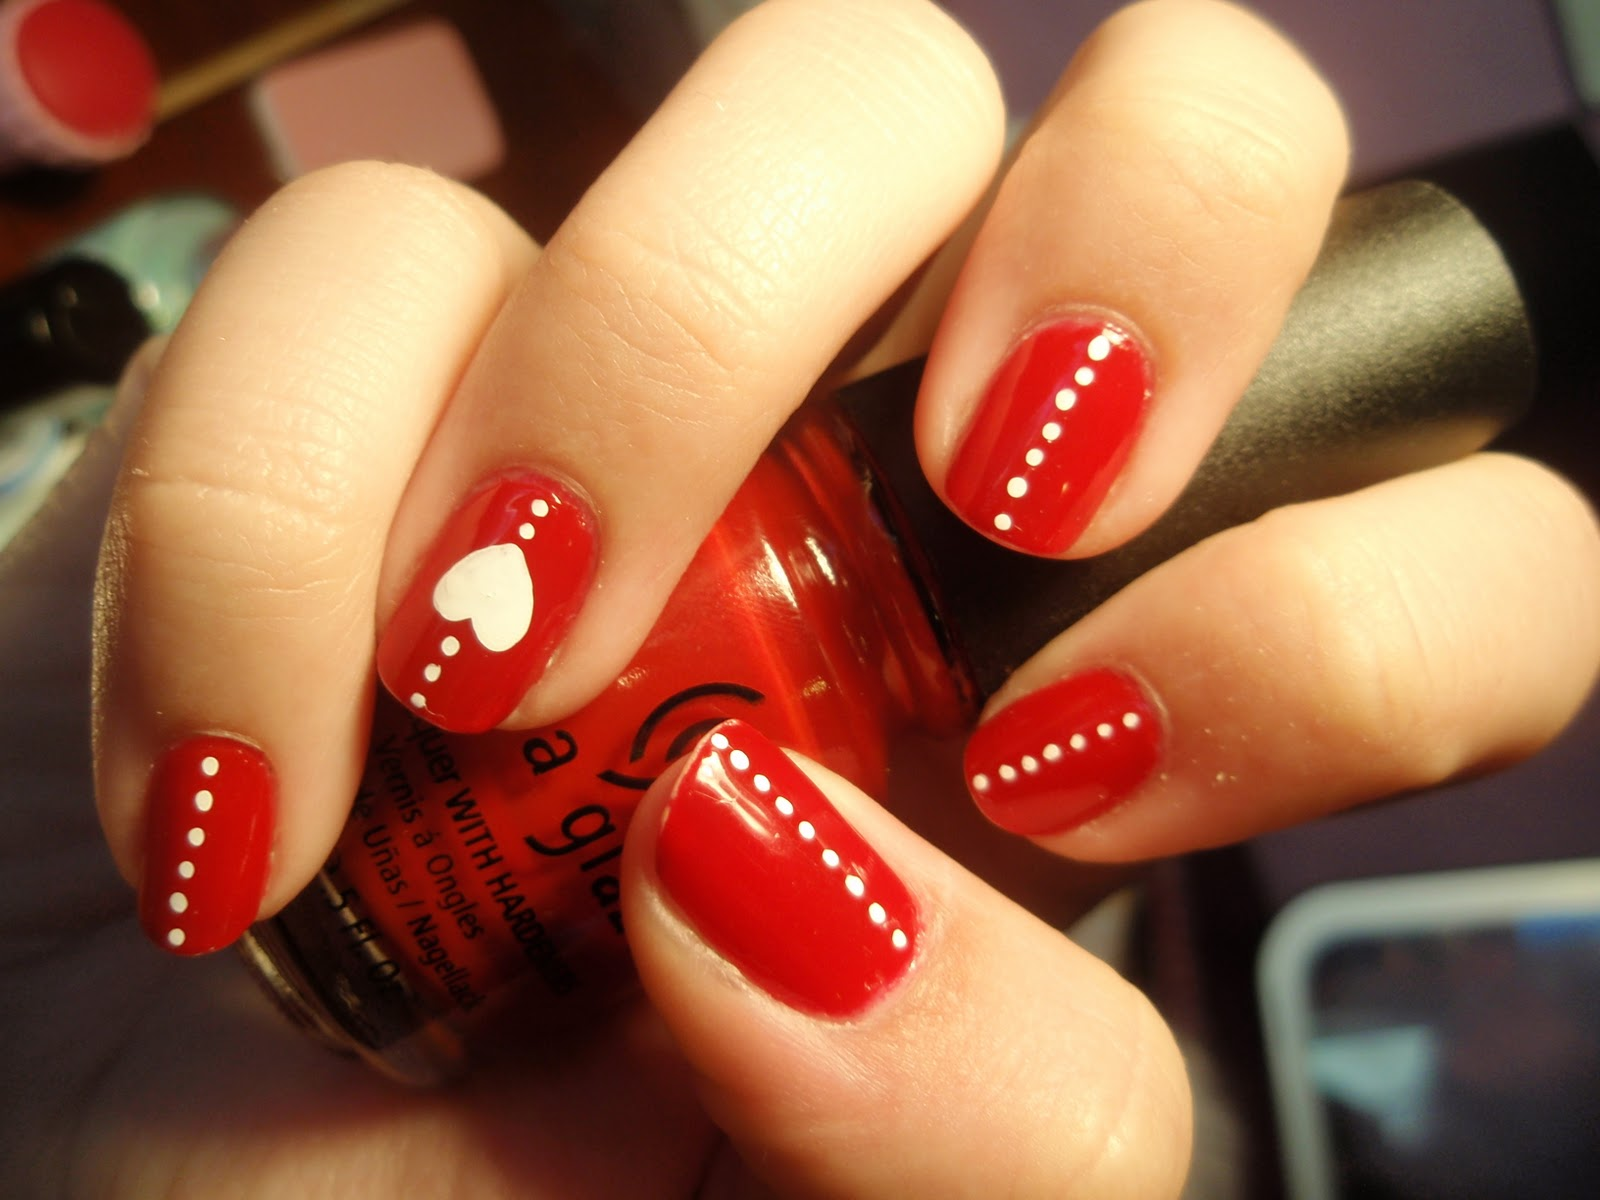 Stylish red nail polish spring 2012 - Nail designs 2013 ...